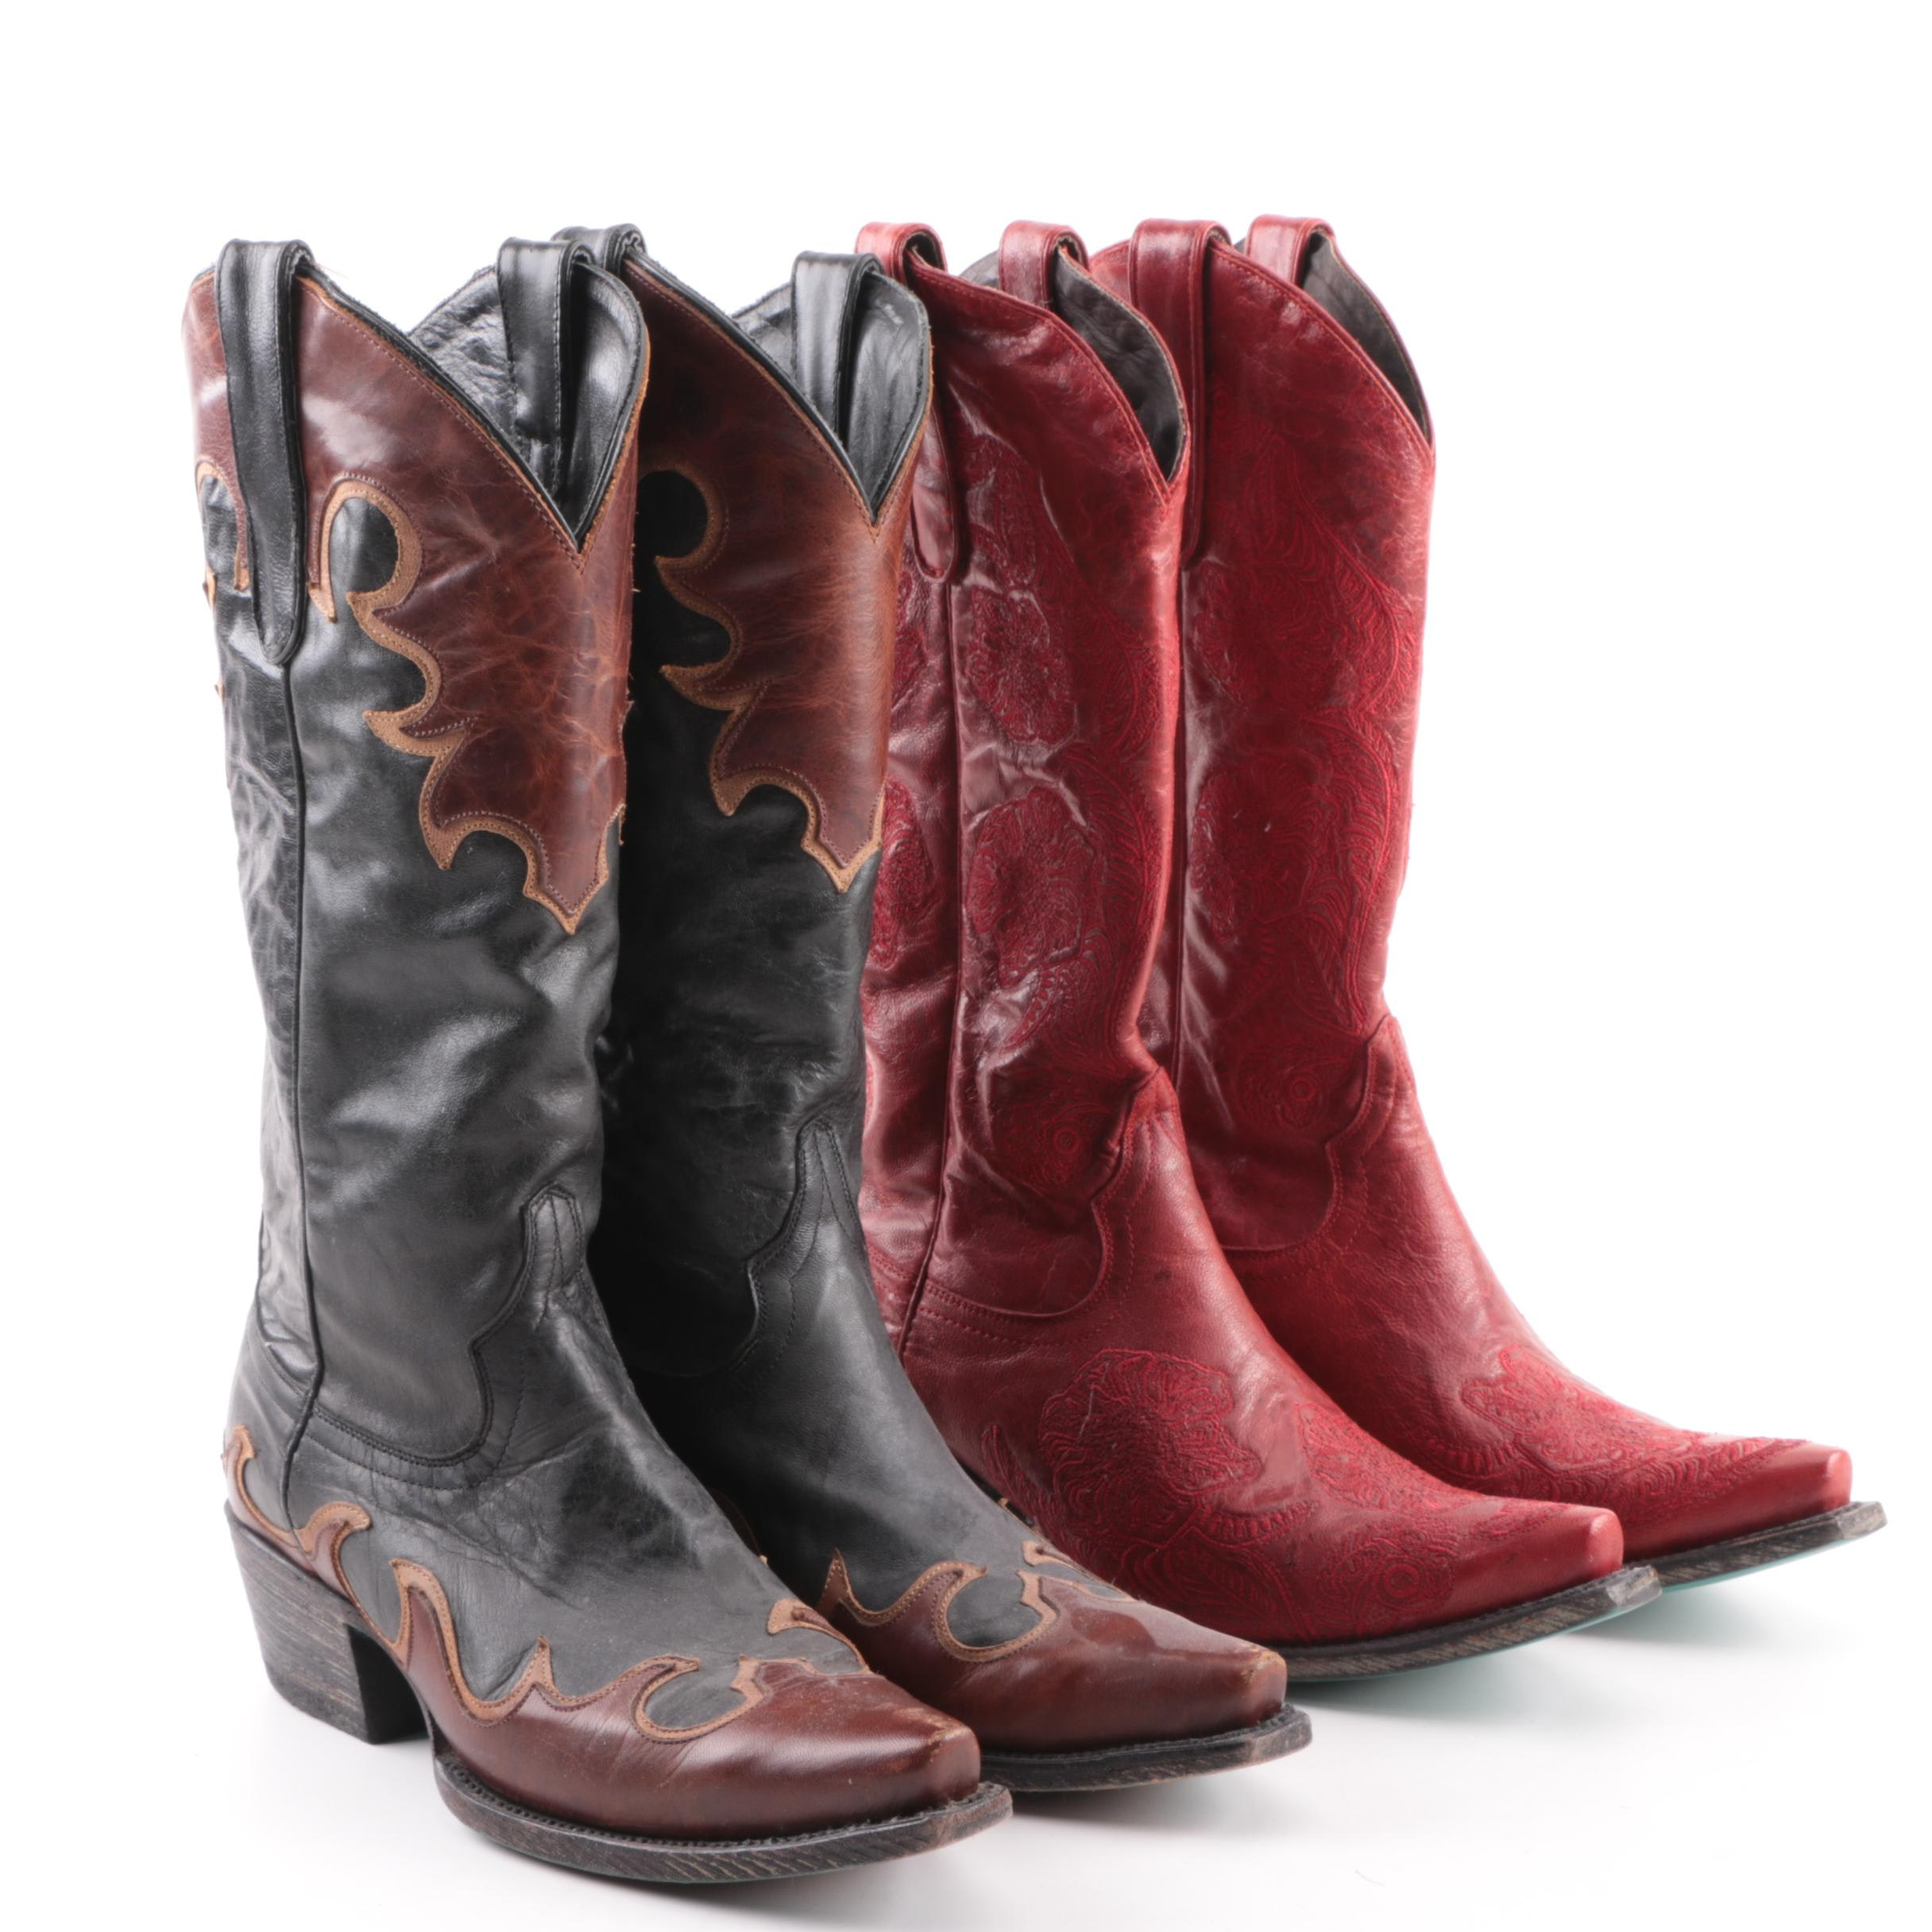 Women's Lane Black and Red Leather Cowboy Boots